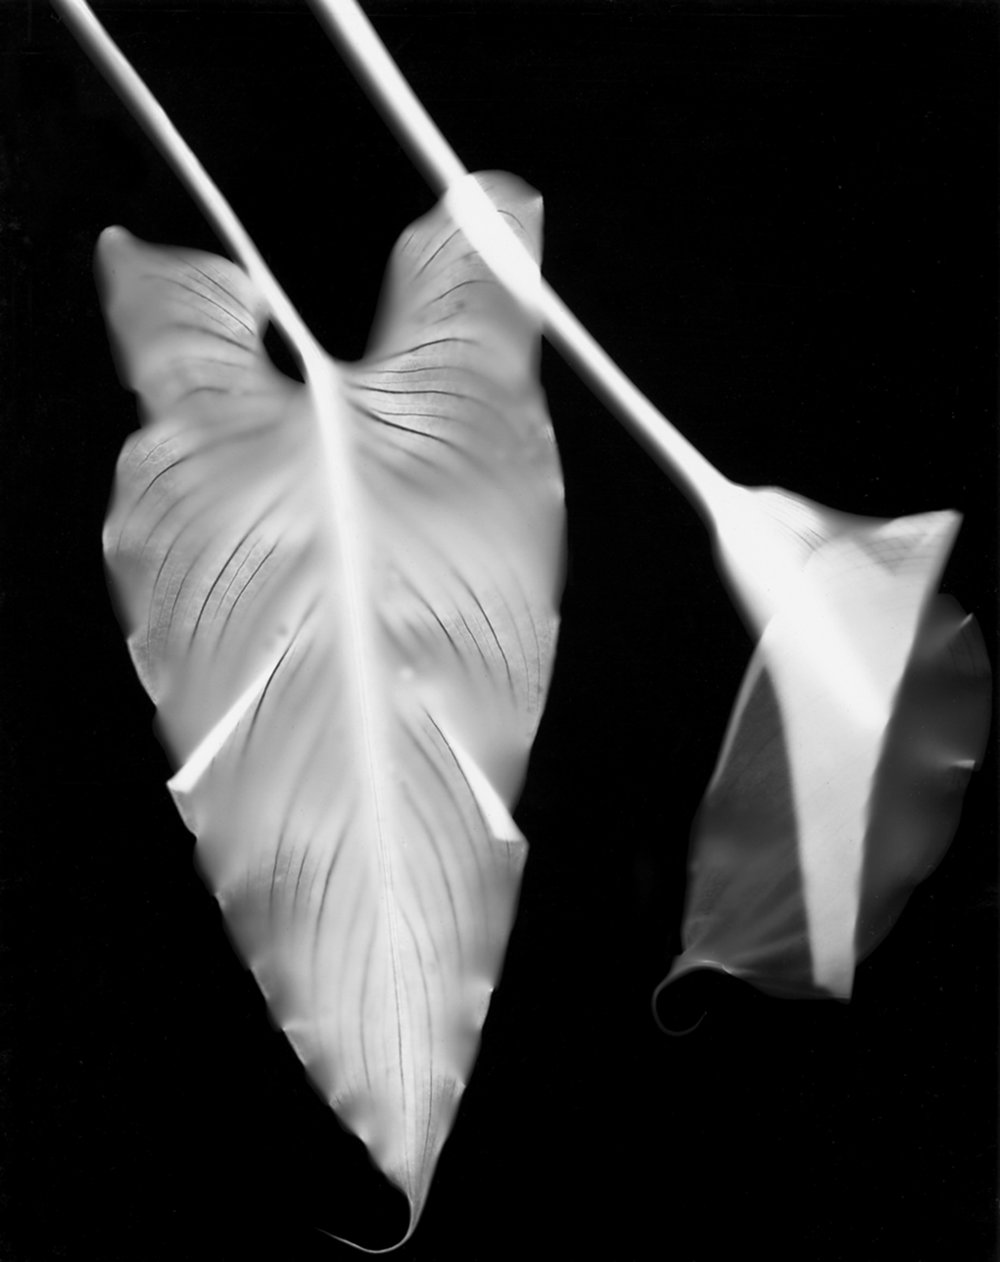 CALLA LILLY, 2000